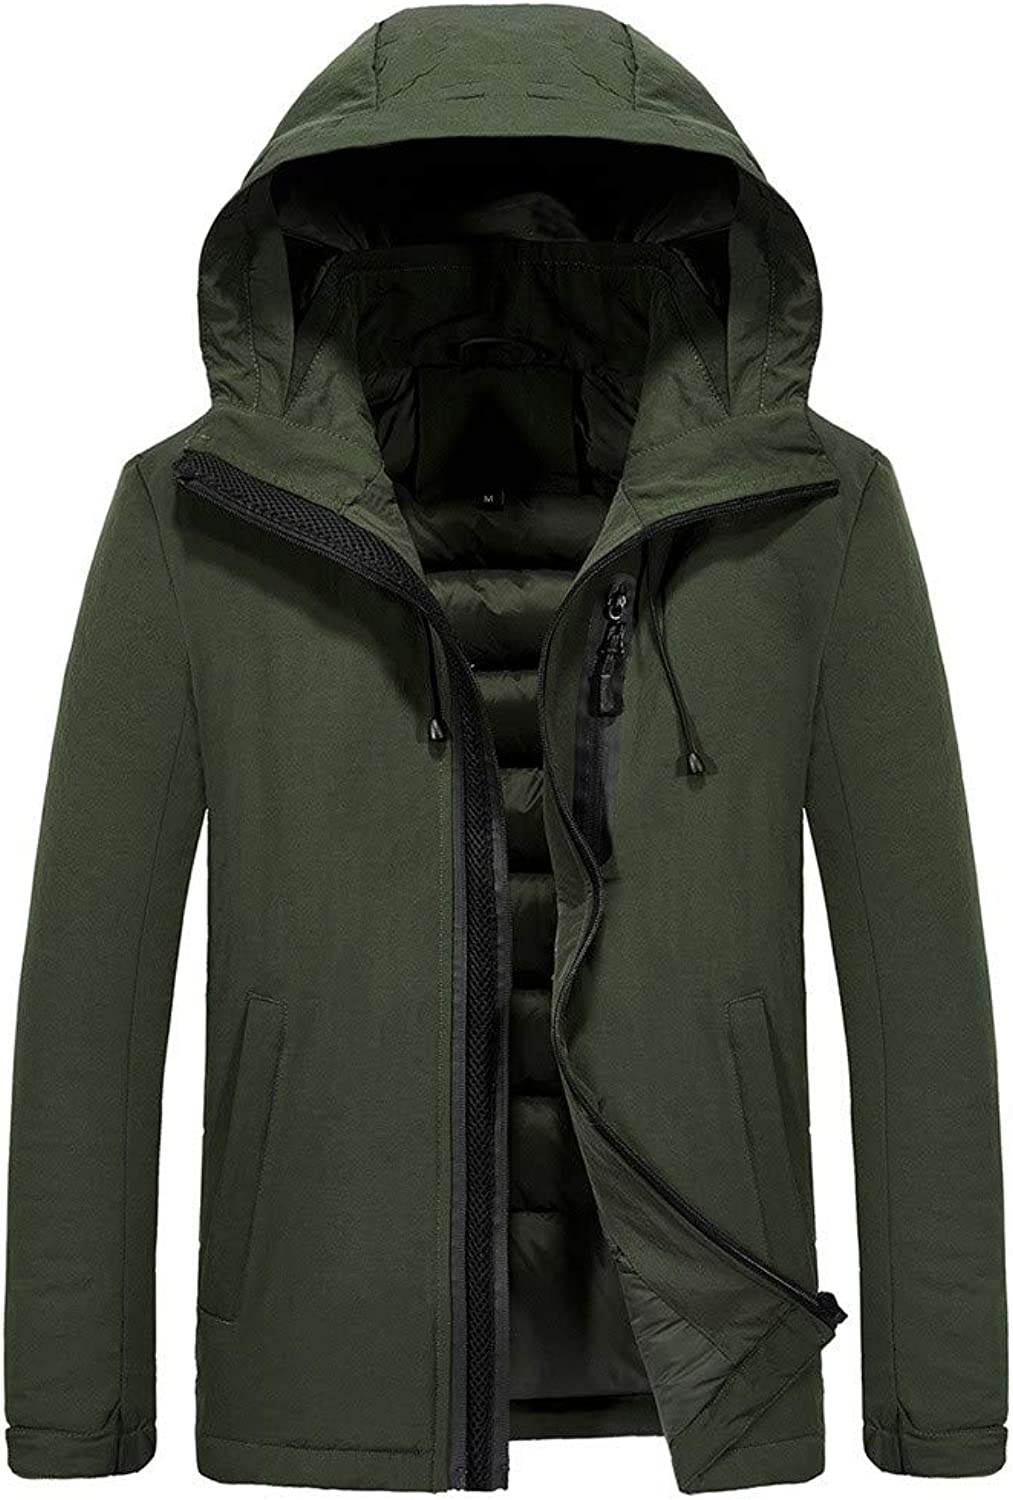 FANOUD Men's Winter Casual Hoodie Zipper Pocket Thickened Cotton Padded Jacket Coat